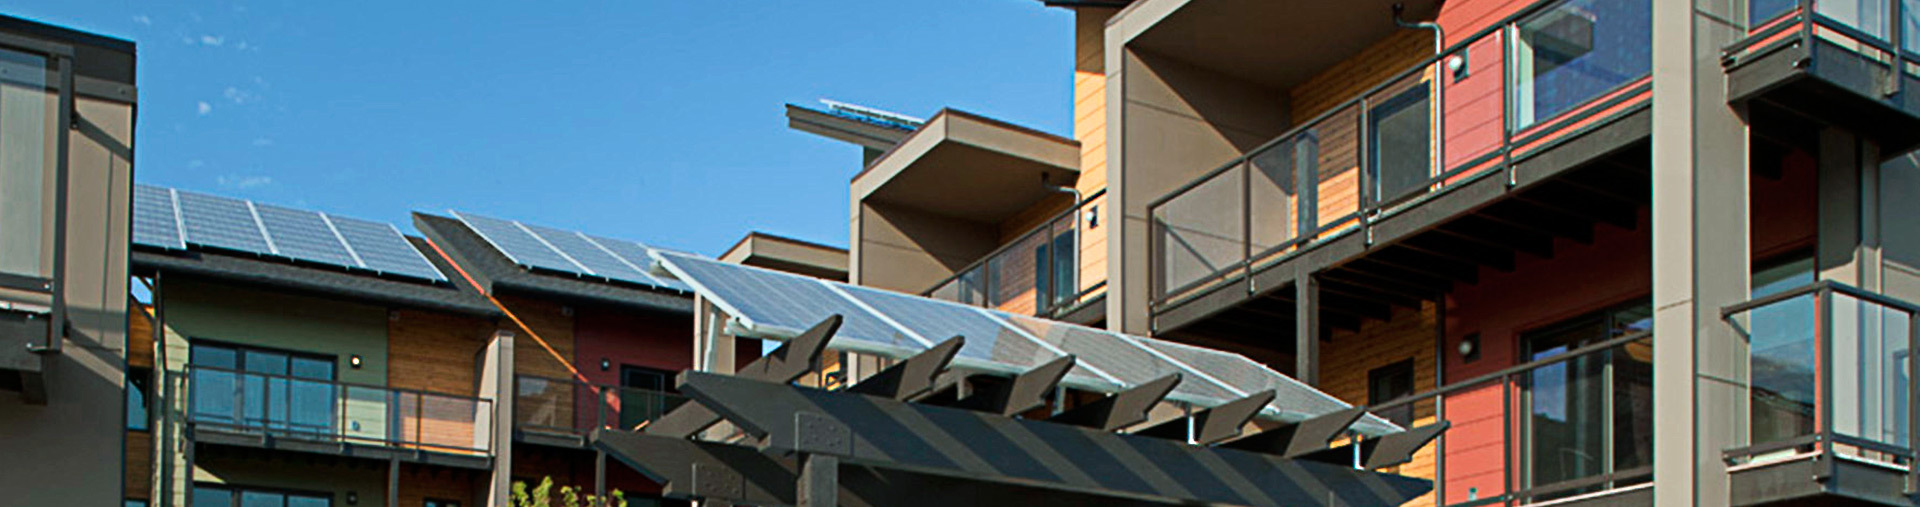 Built Green™ Rating System For Residential Green Building Projects In King  County, WA   King County